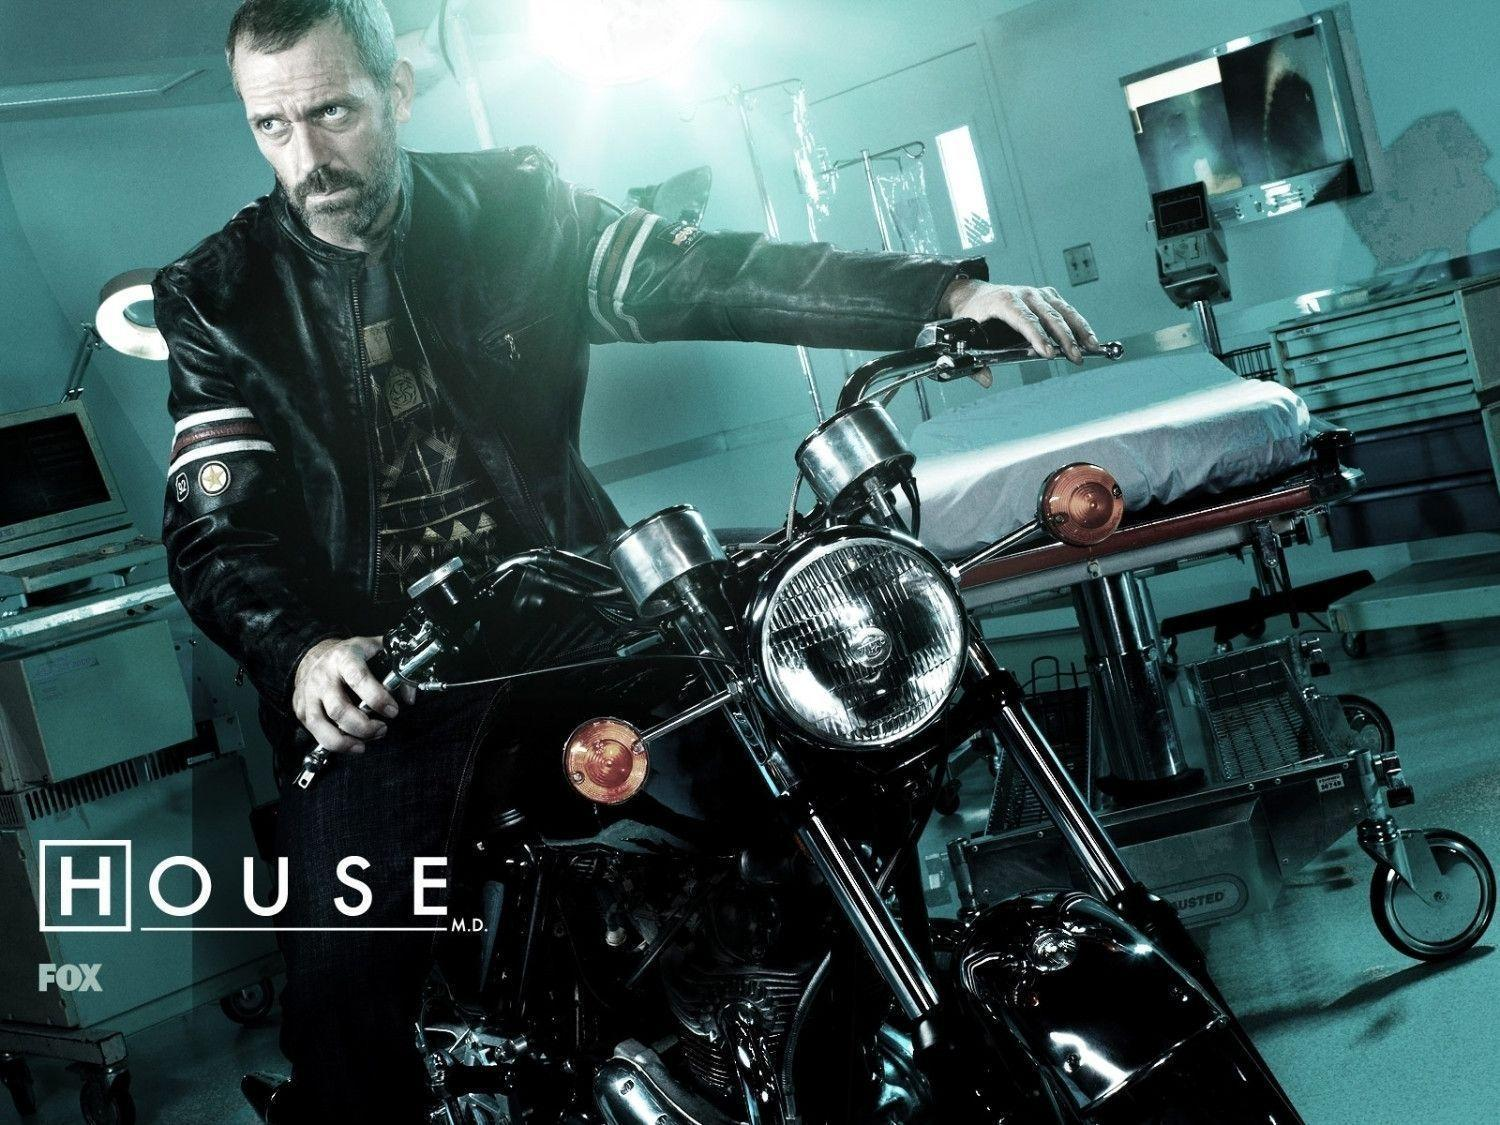 house md wallpaper - wolverine&house Wallpaper (16188471) - Fanpop